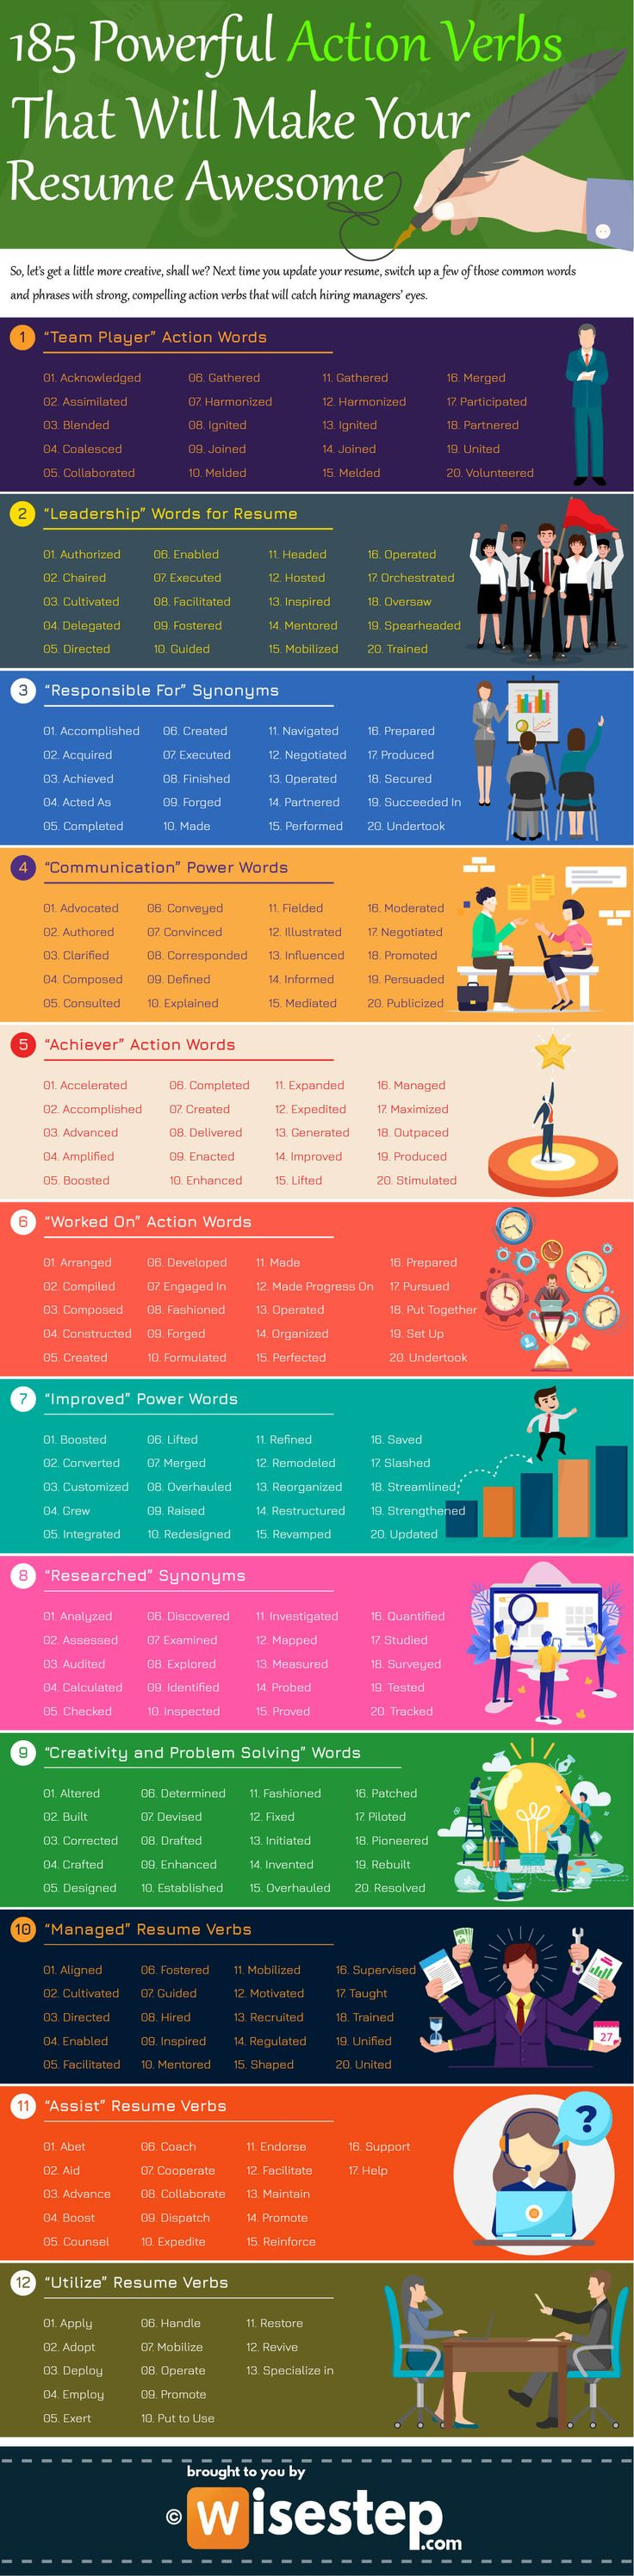 Powerful action verbs that will make your resume awesome